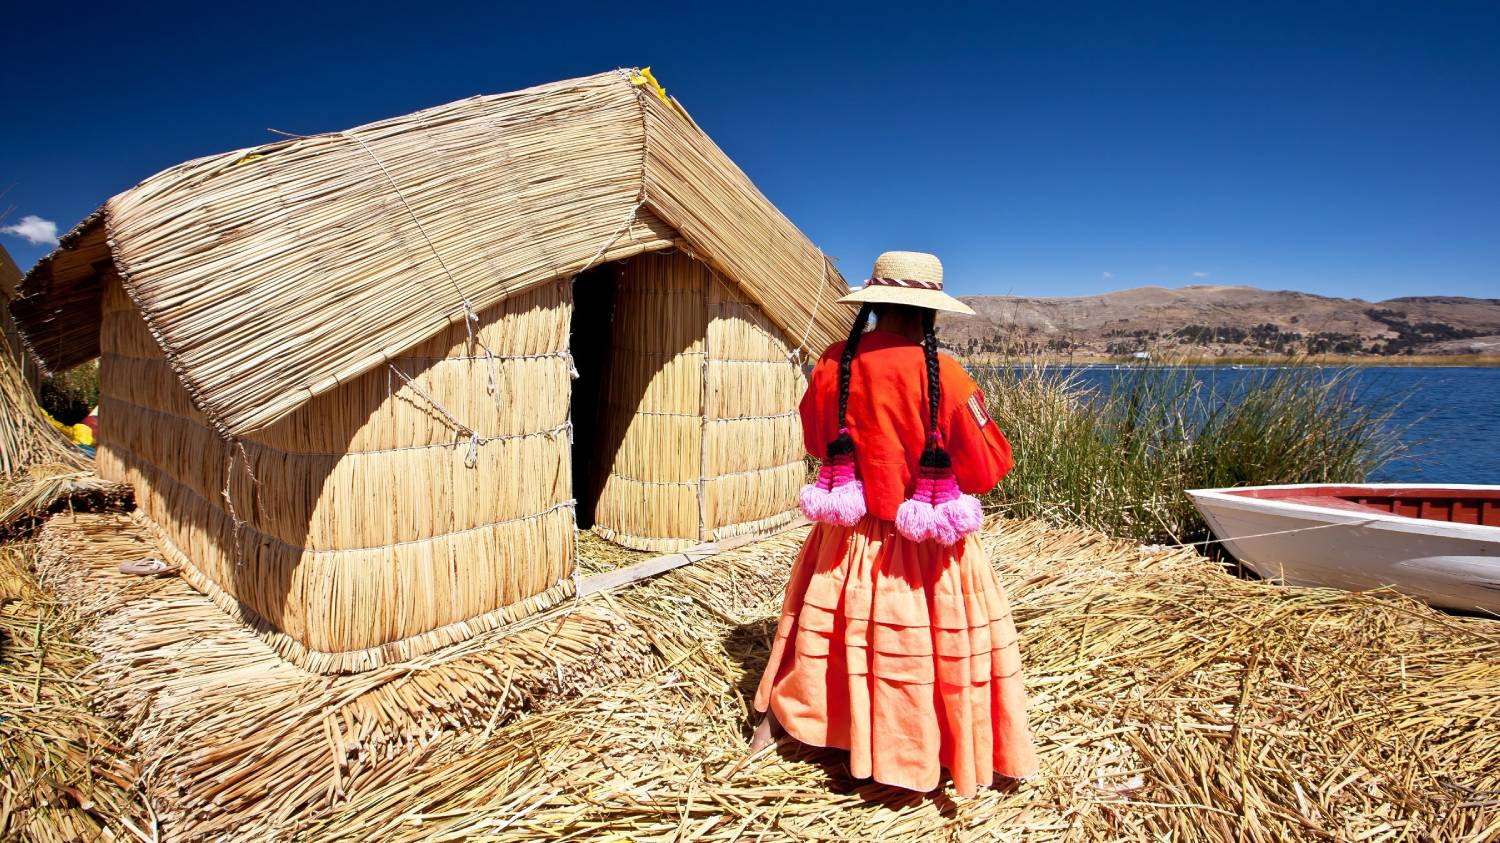 Peru - The Best Countries To Visit In South America